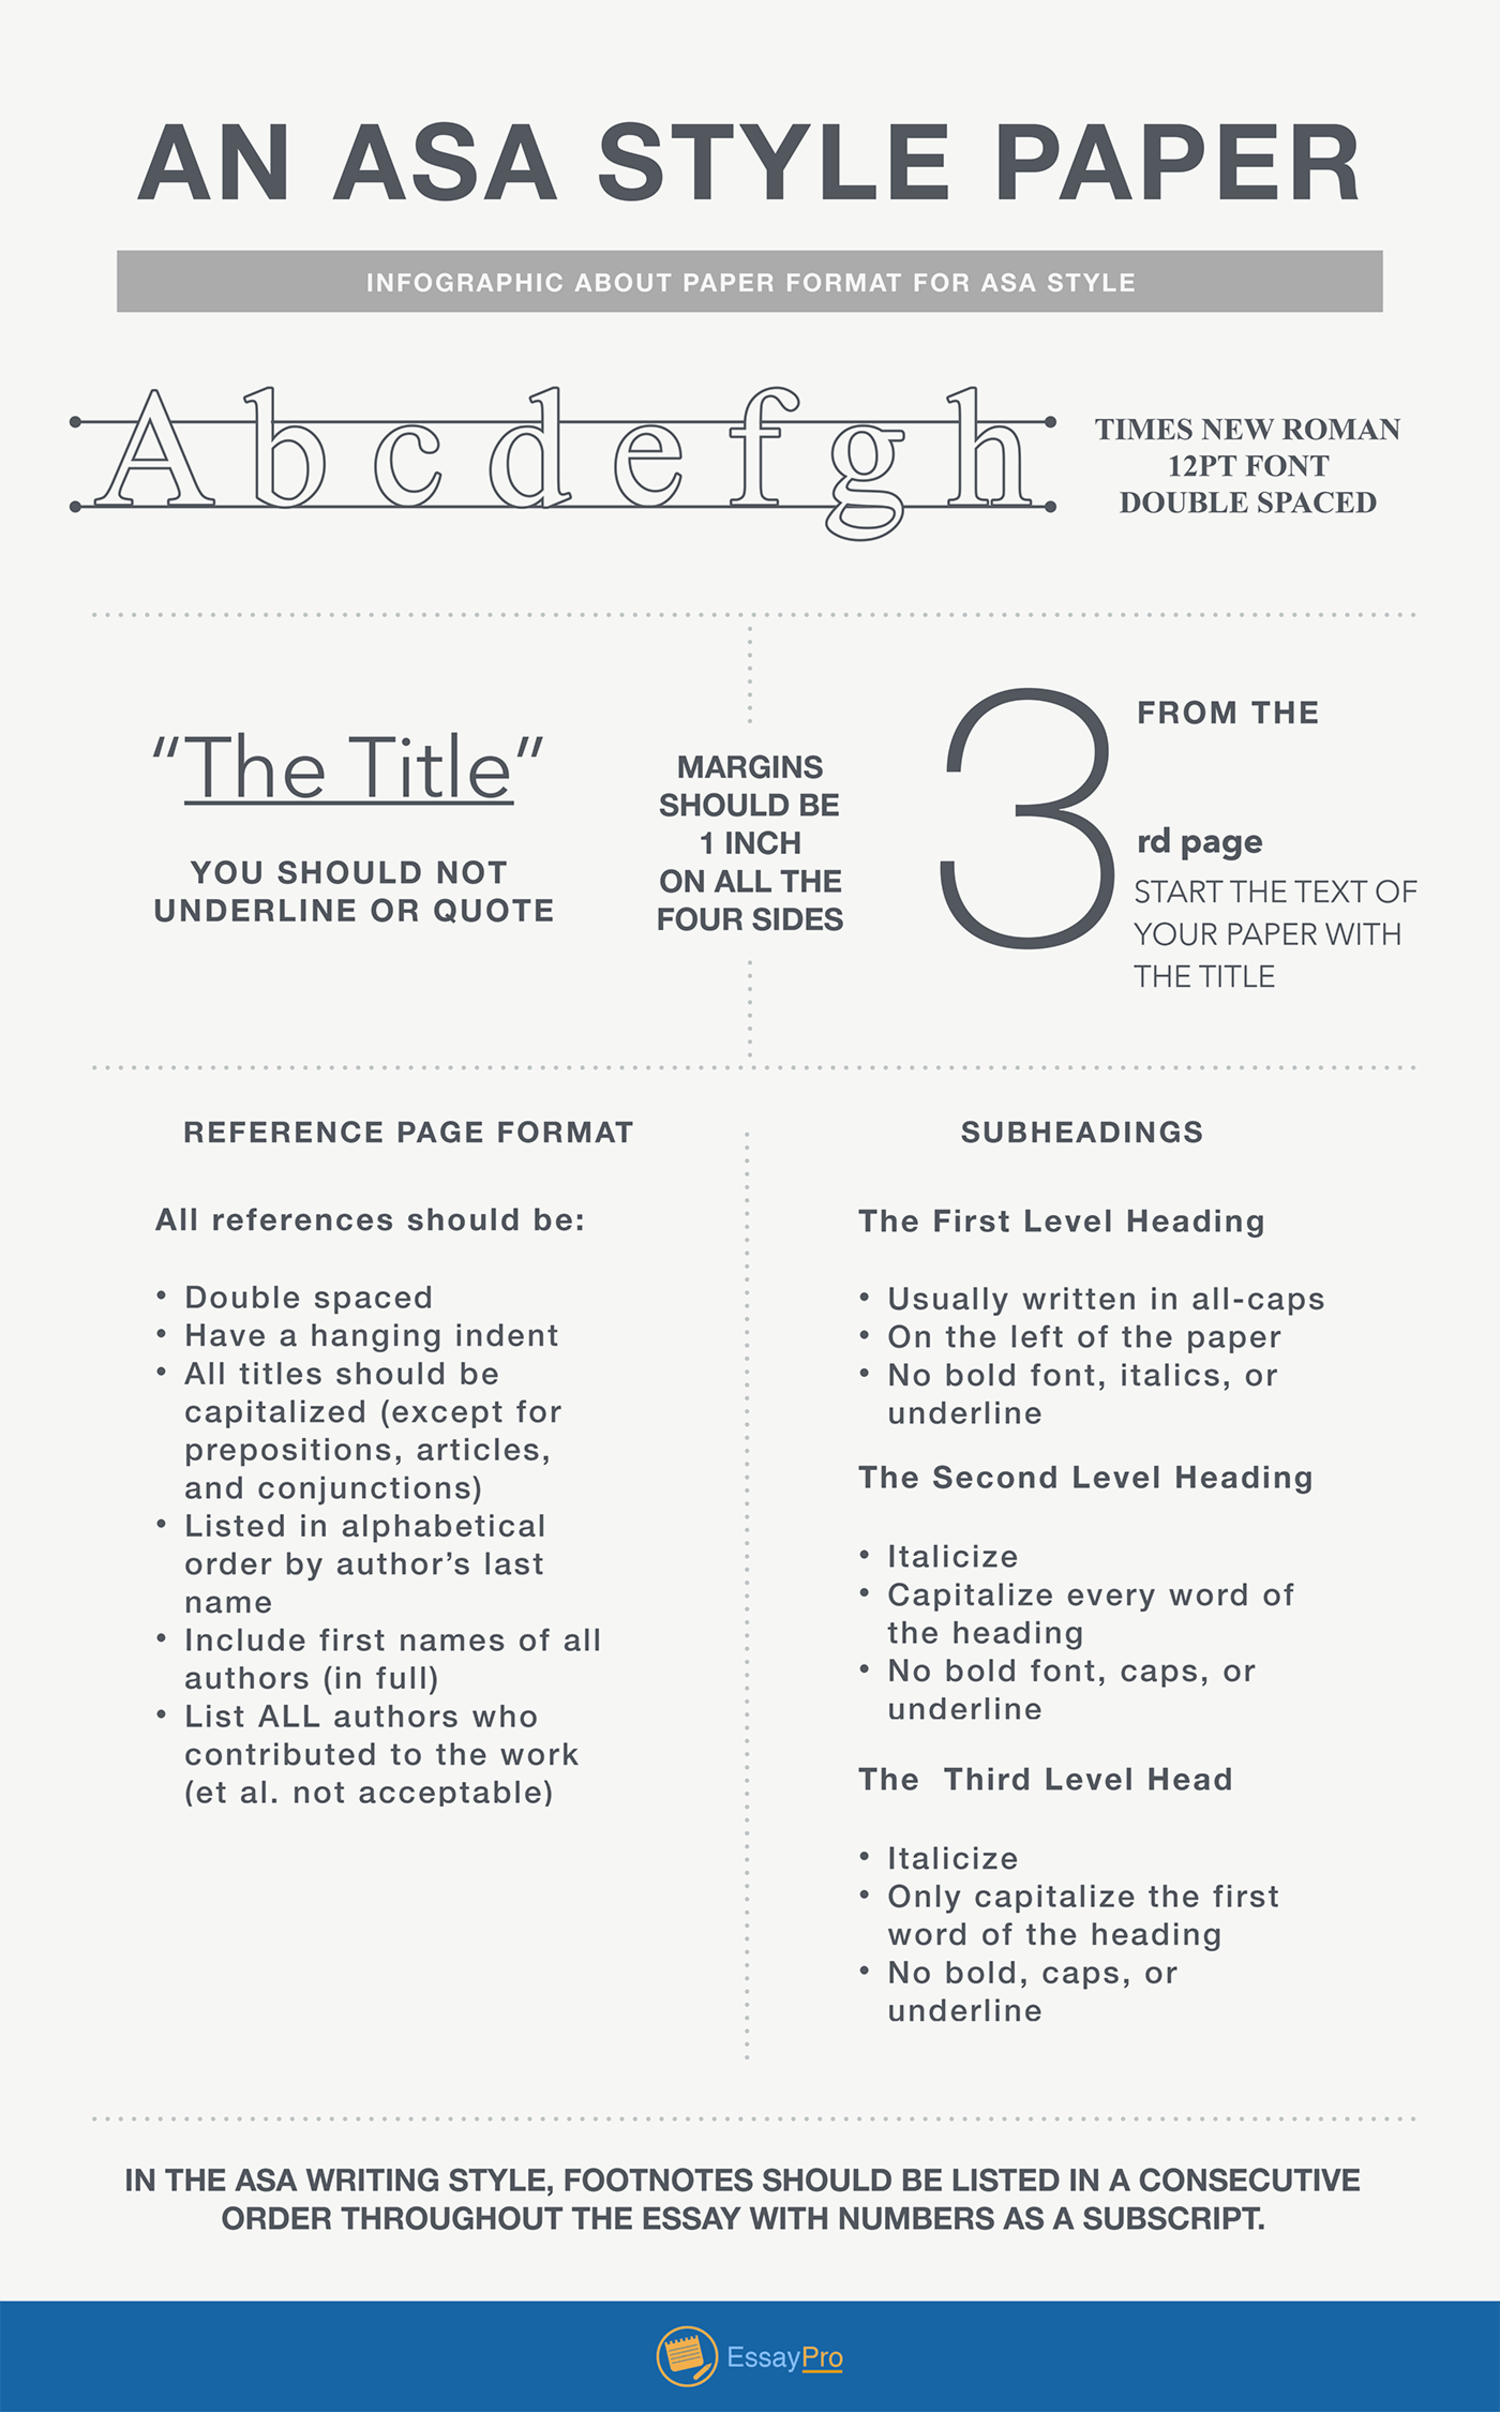 ASA Style Paper Format Styles And Formats Pinterest